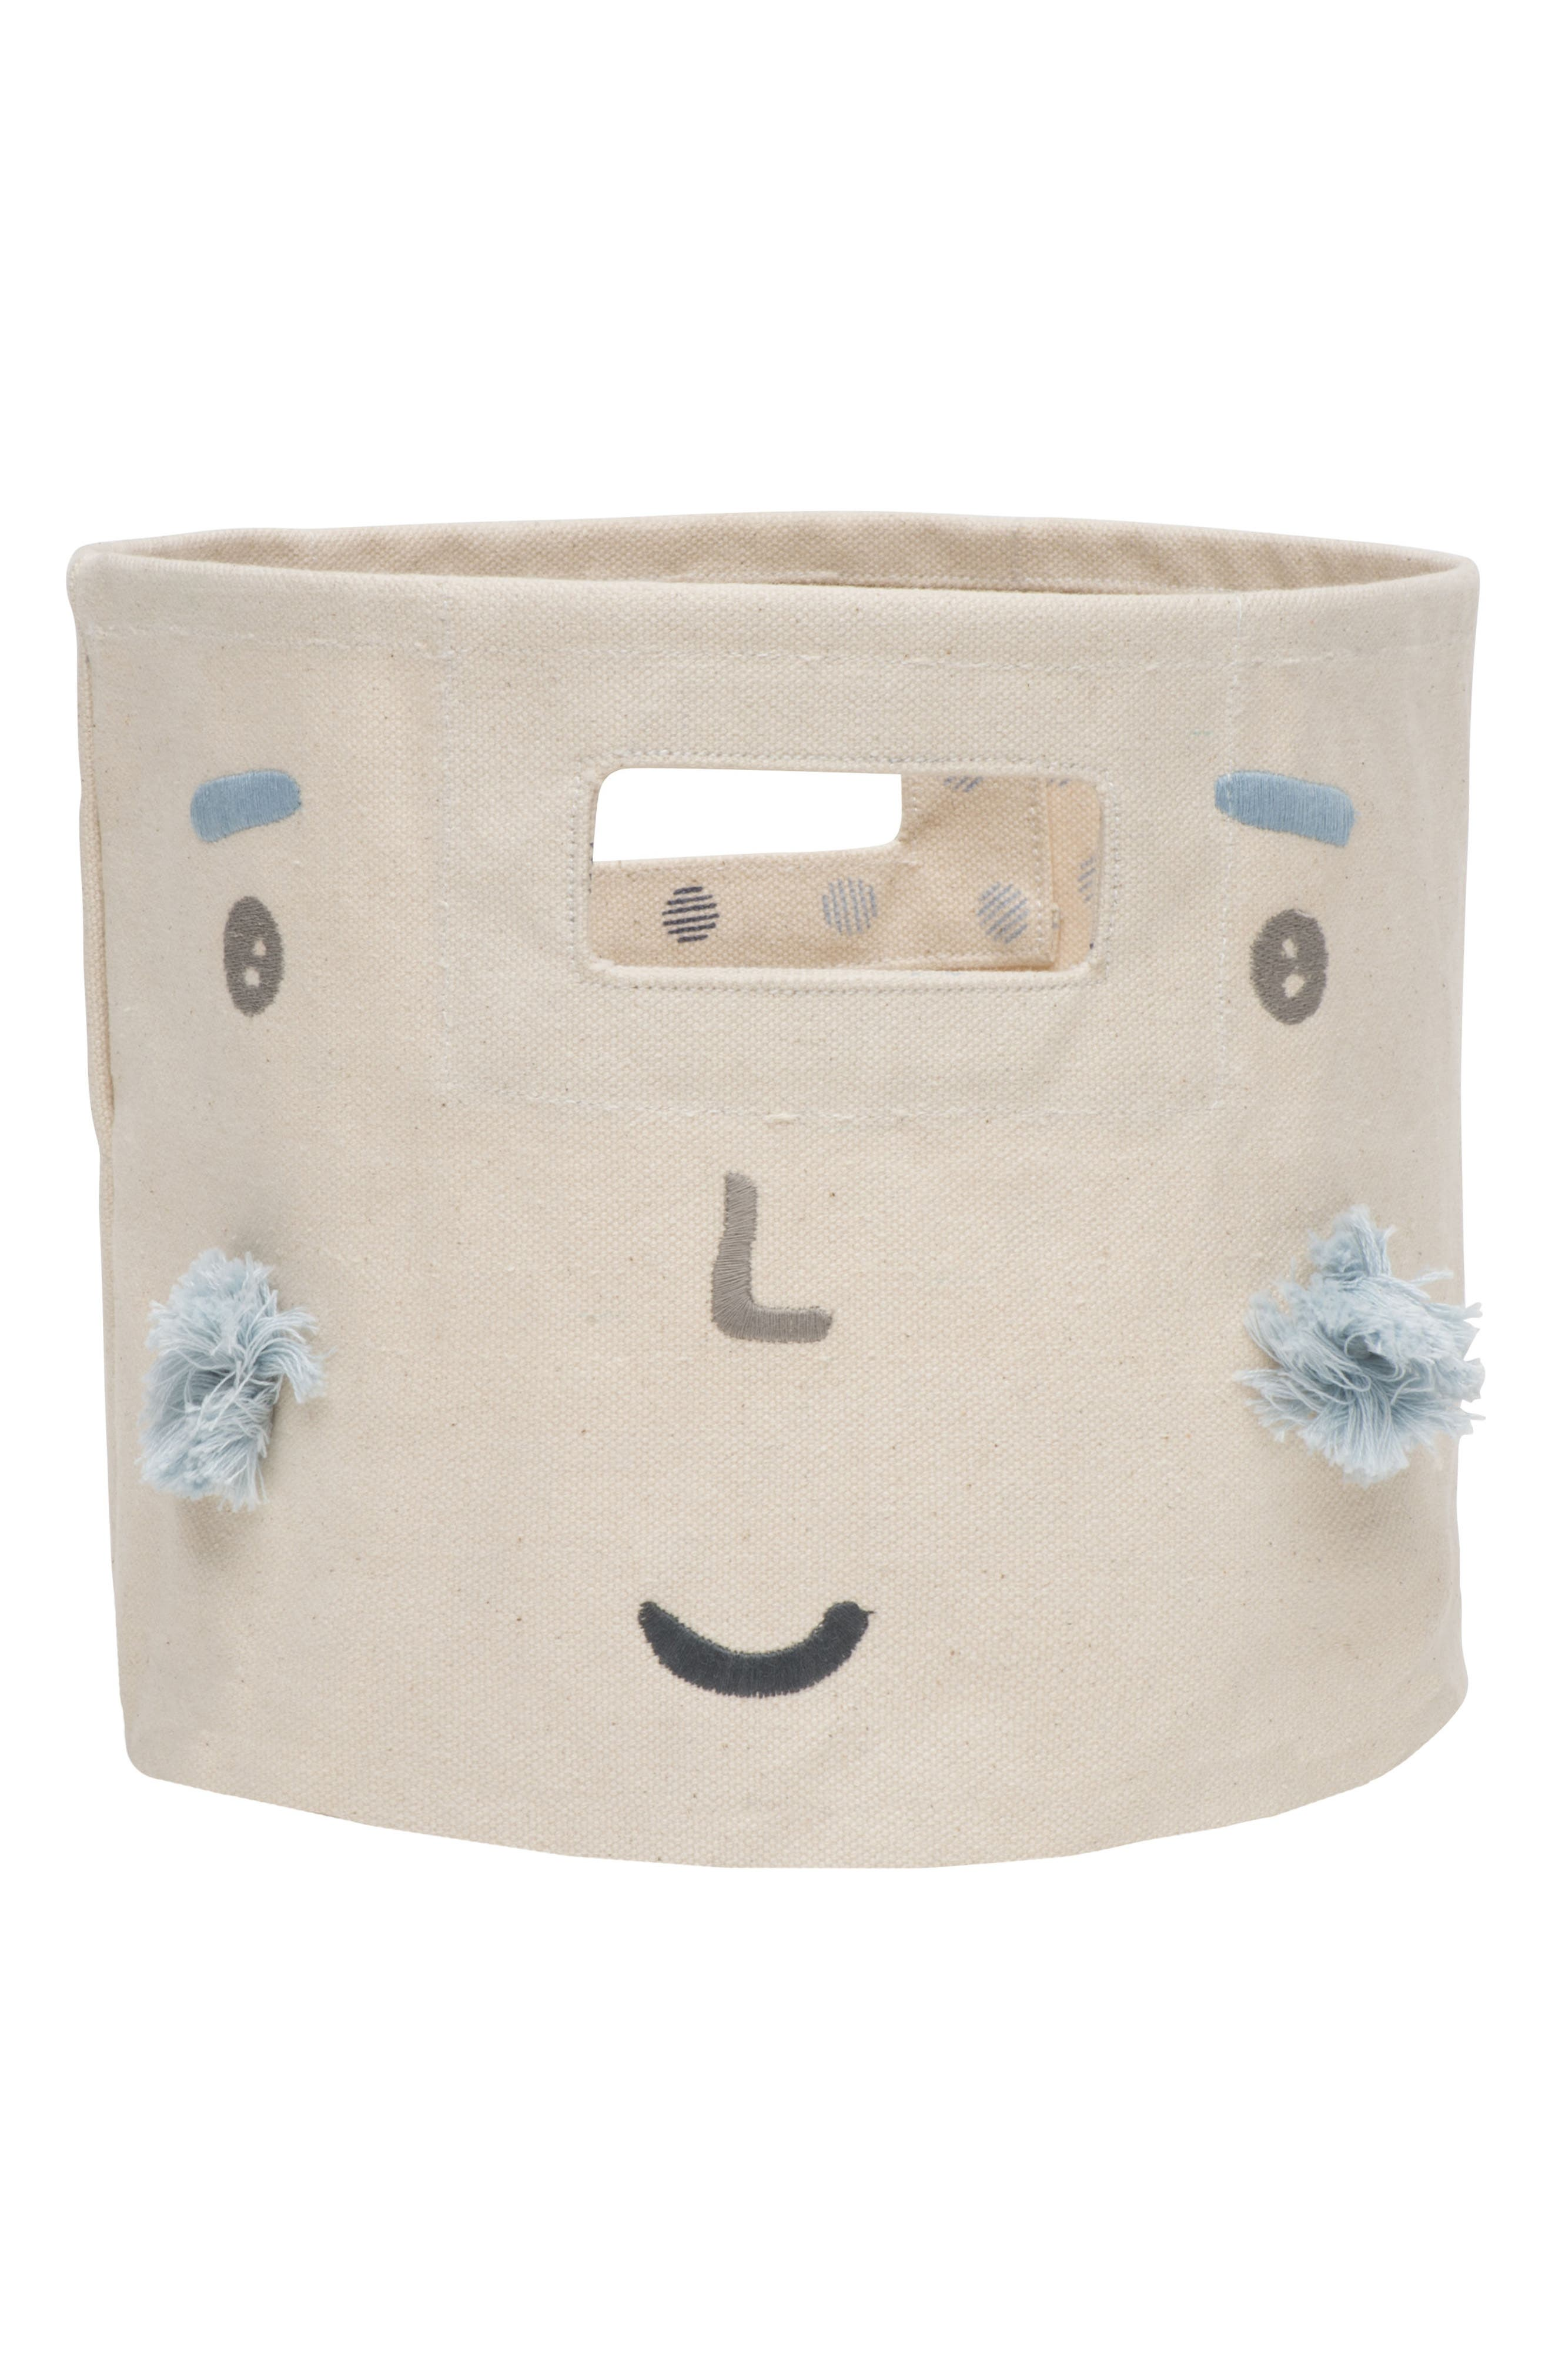 PEHR,                             Peek-A-Boo Boy Mini Canvas Bin,                             Main thumbnail 1, color,                             900